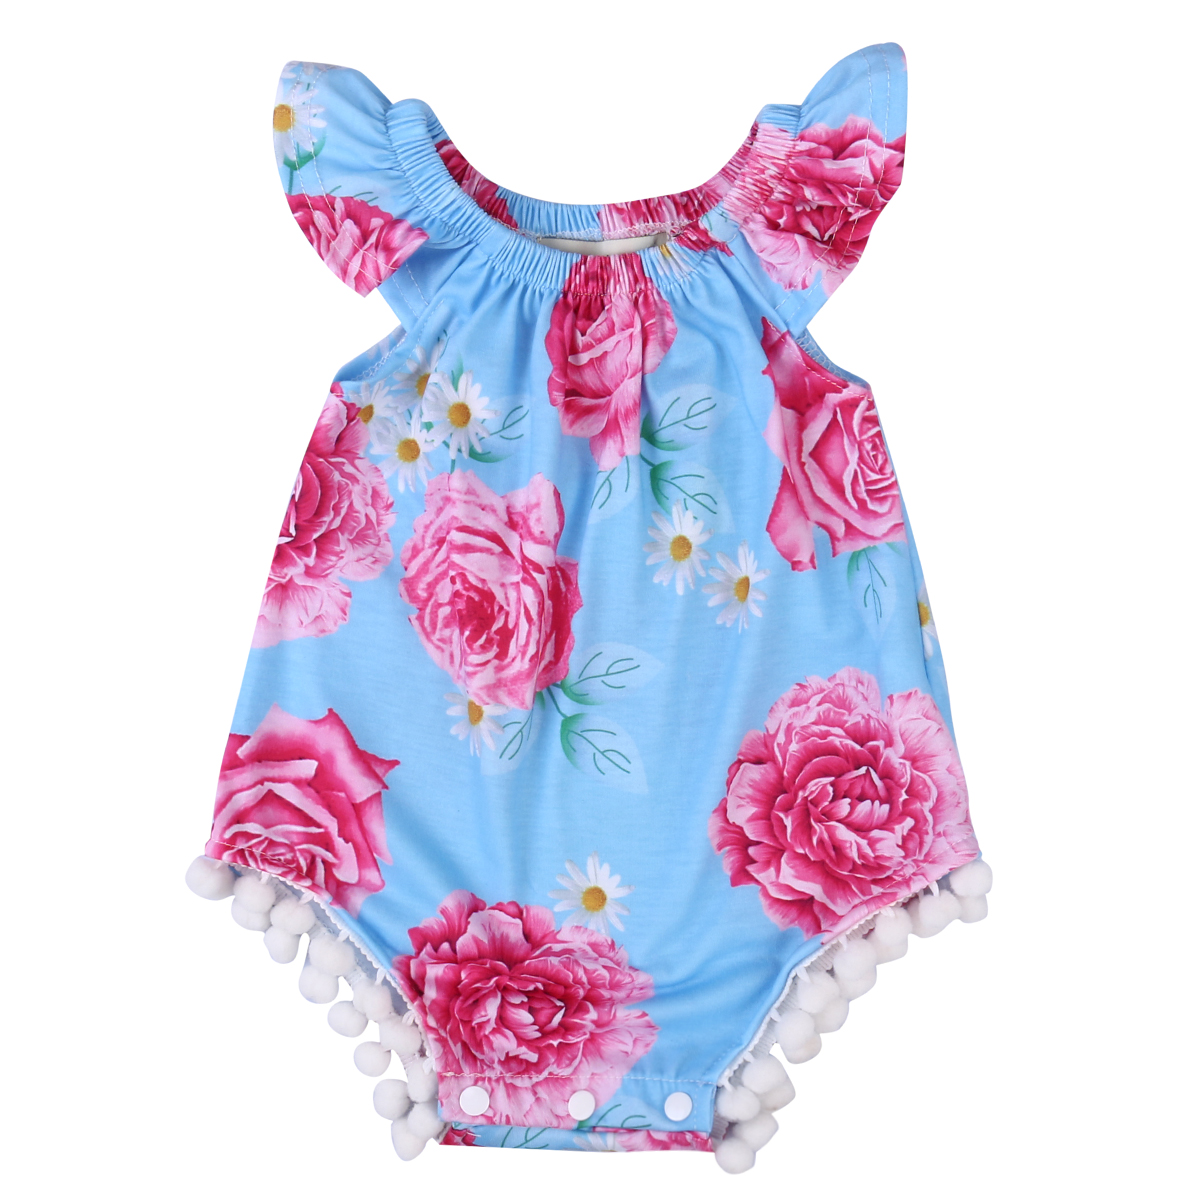 Cotton Newborn Infant Baby Girls Floral Romper Jumpsuit Clothes Outfits 0-24M summer newborn infant baby girl romper short sleeve floral romper jumpsuit outfits sunsuit clothes